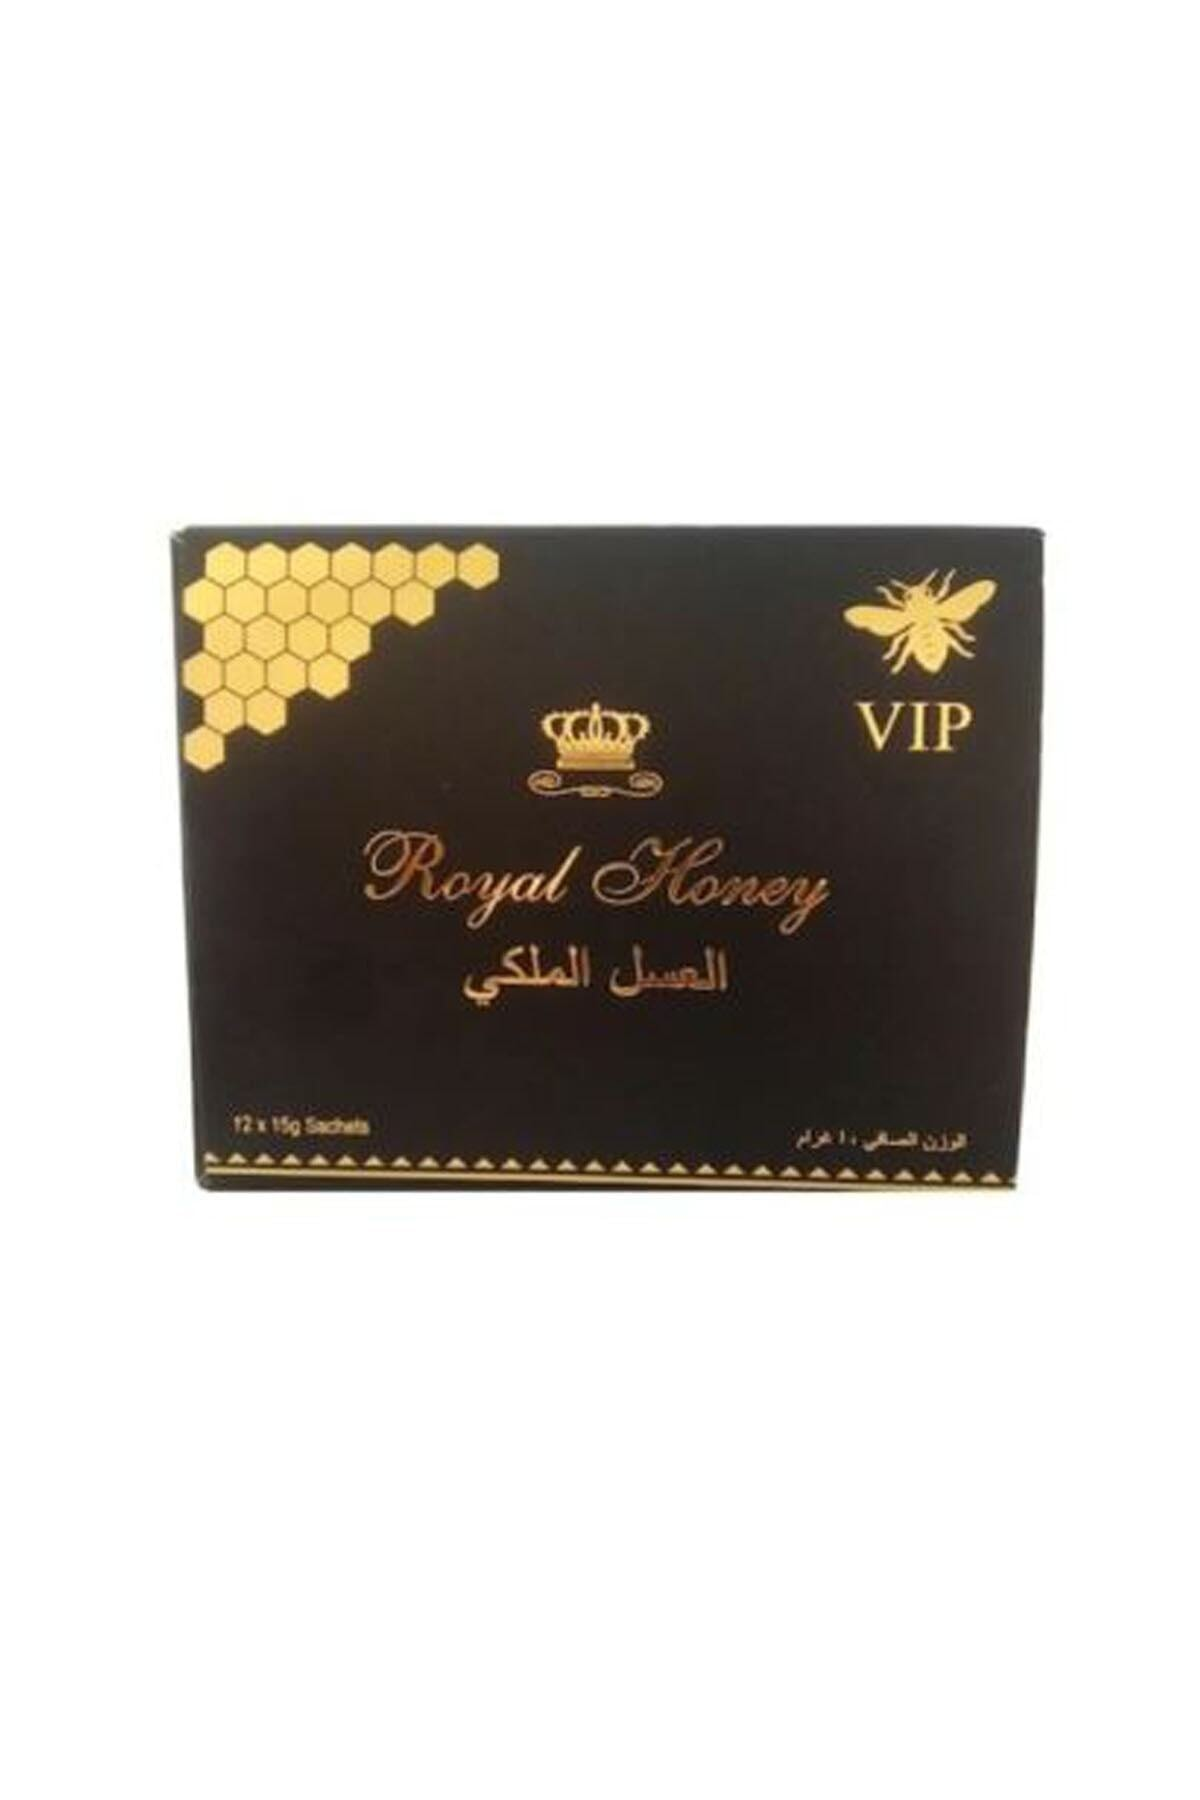 Royal Honey Wonderful Honey 12 Li Paket Ballı Bitkisel Ürün 1